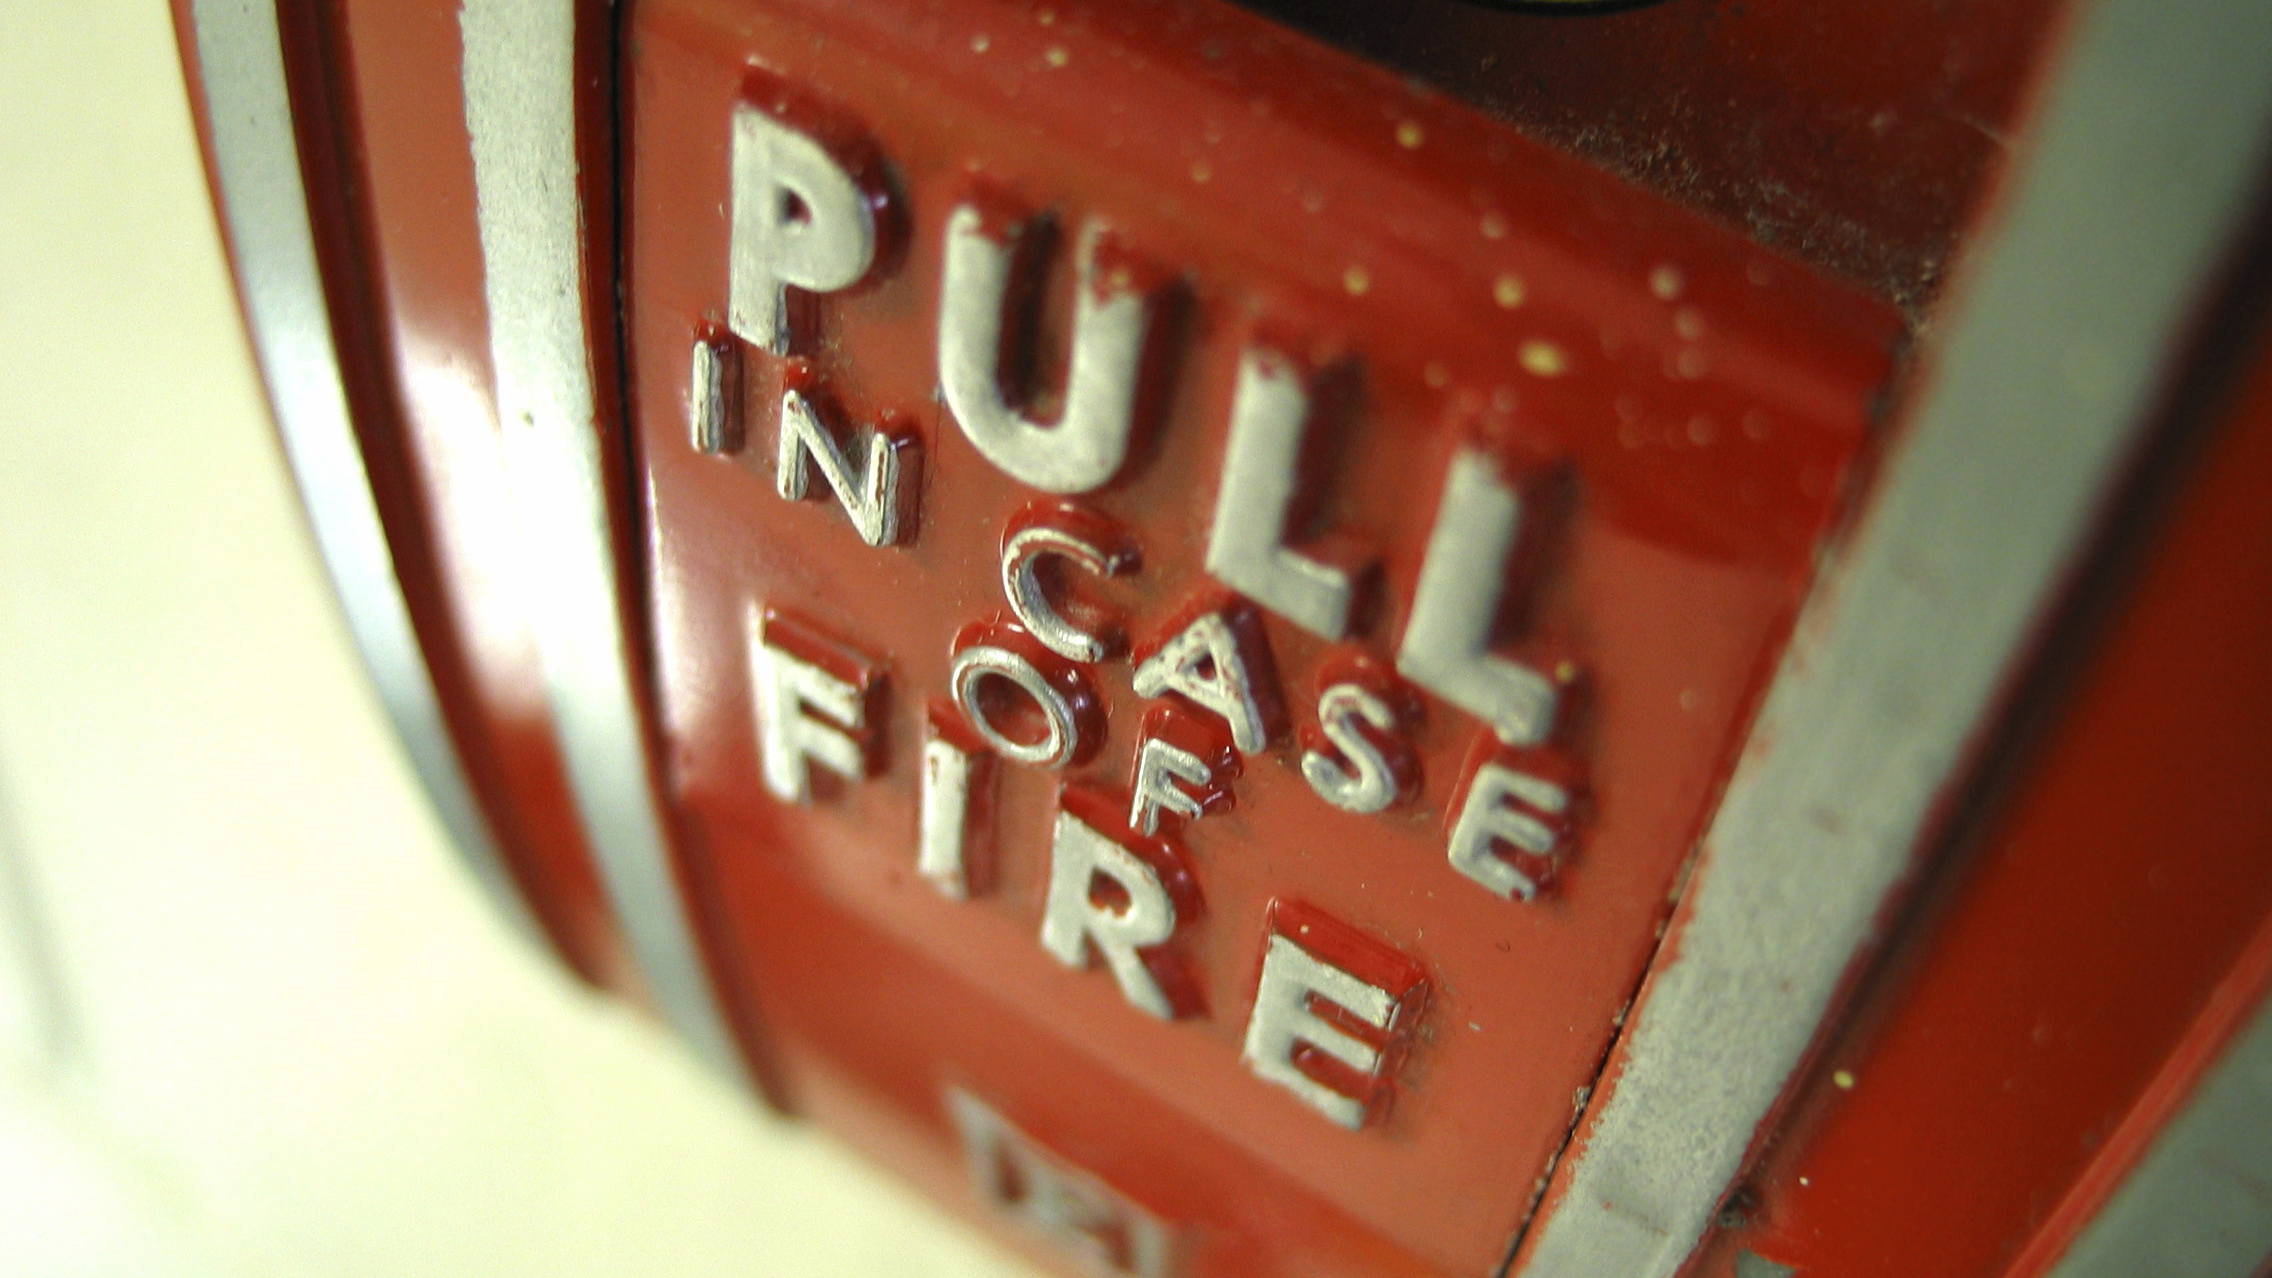 Card image cap of an img of a fire alarm